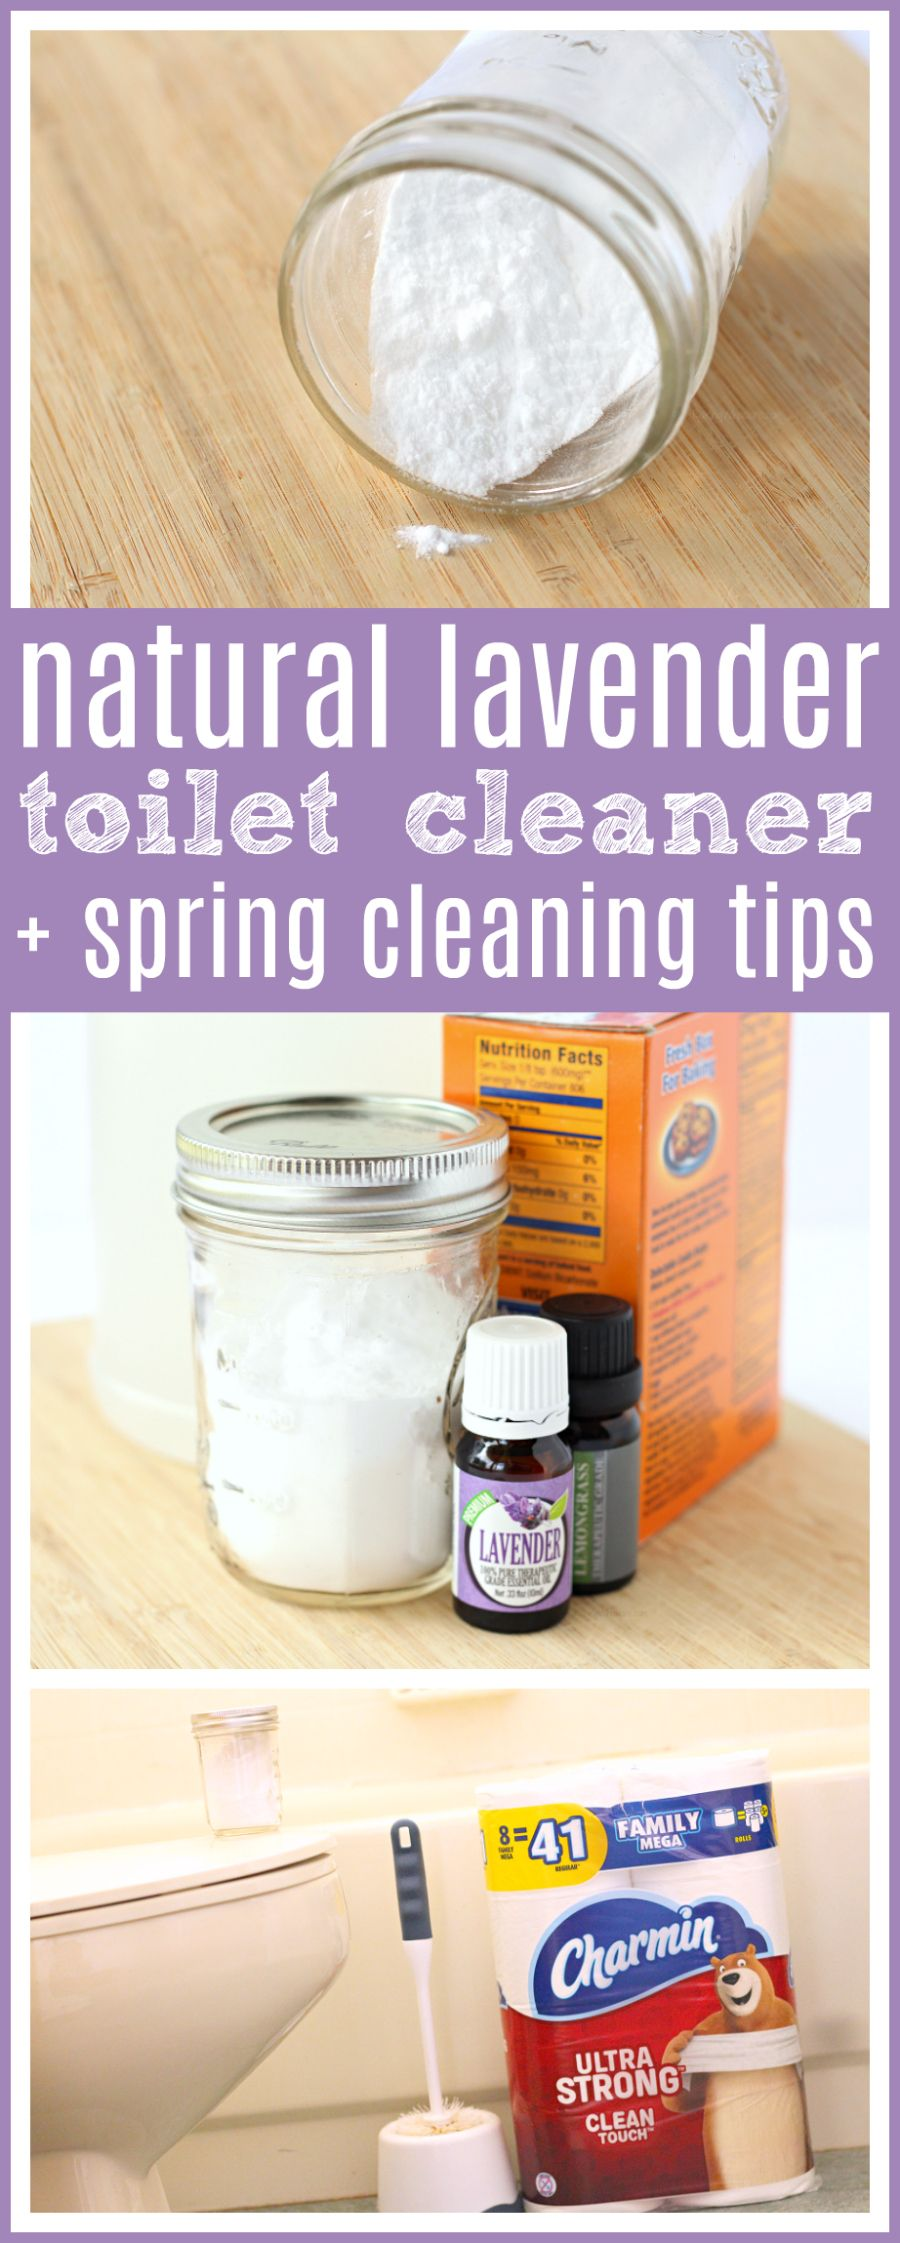 Diy Natural Toilet Cleaner Spring Cleaning Tips Natural Toilet Cleaner Spring Cleaning Hacks Toilet Cleaner